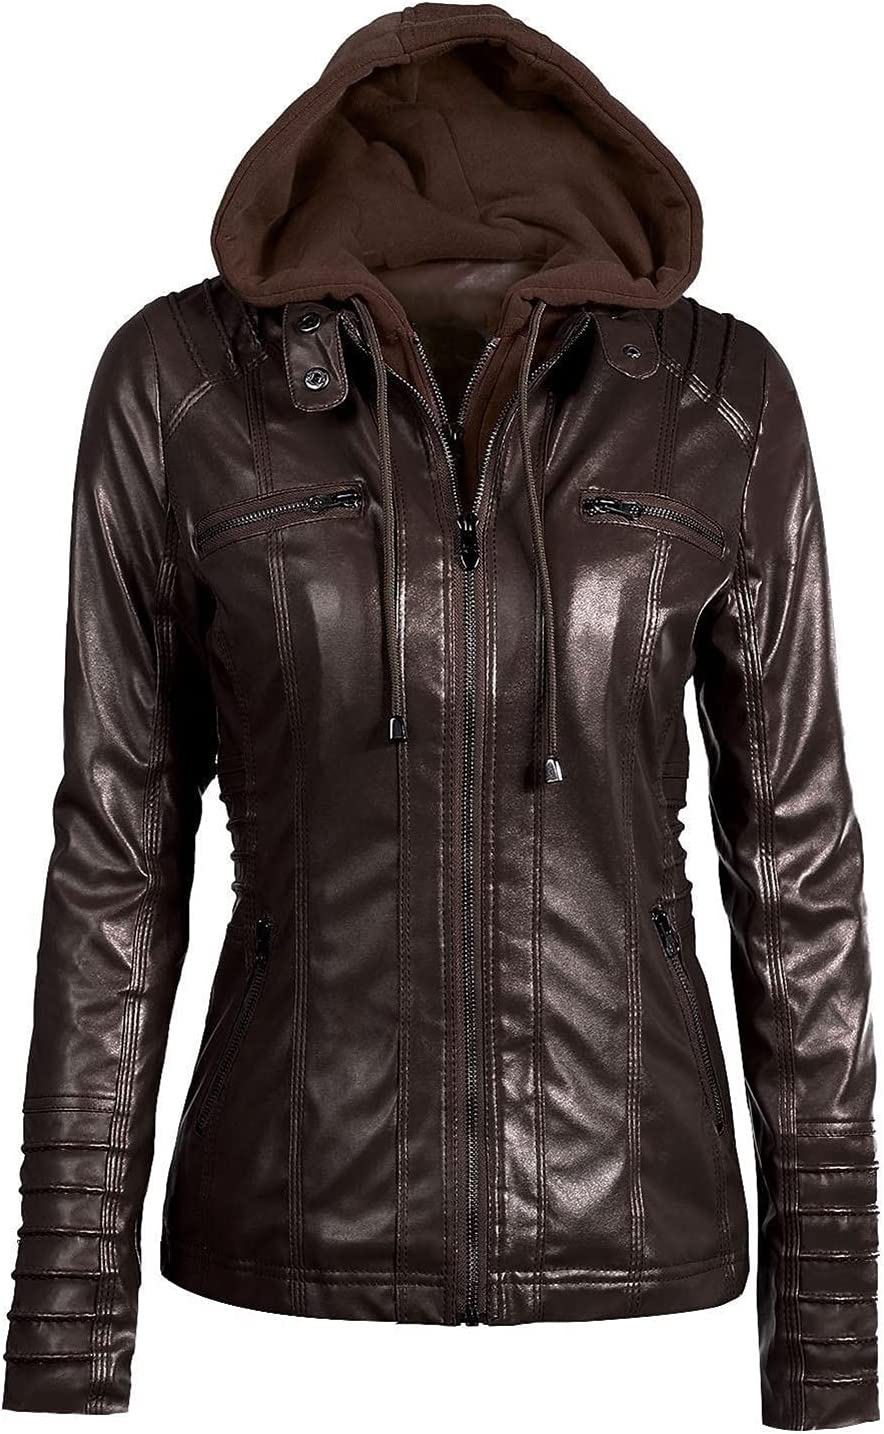 Plus Size 7XL Women Hooded Faux Leather Jacket Pu Motorcycle Hat Detachable Casual Leather Punk Outerwear (Color : Coffee, Size : 7XL.)